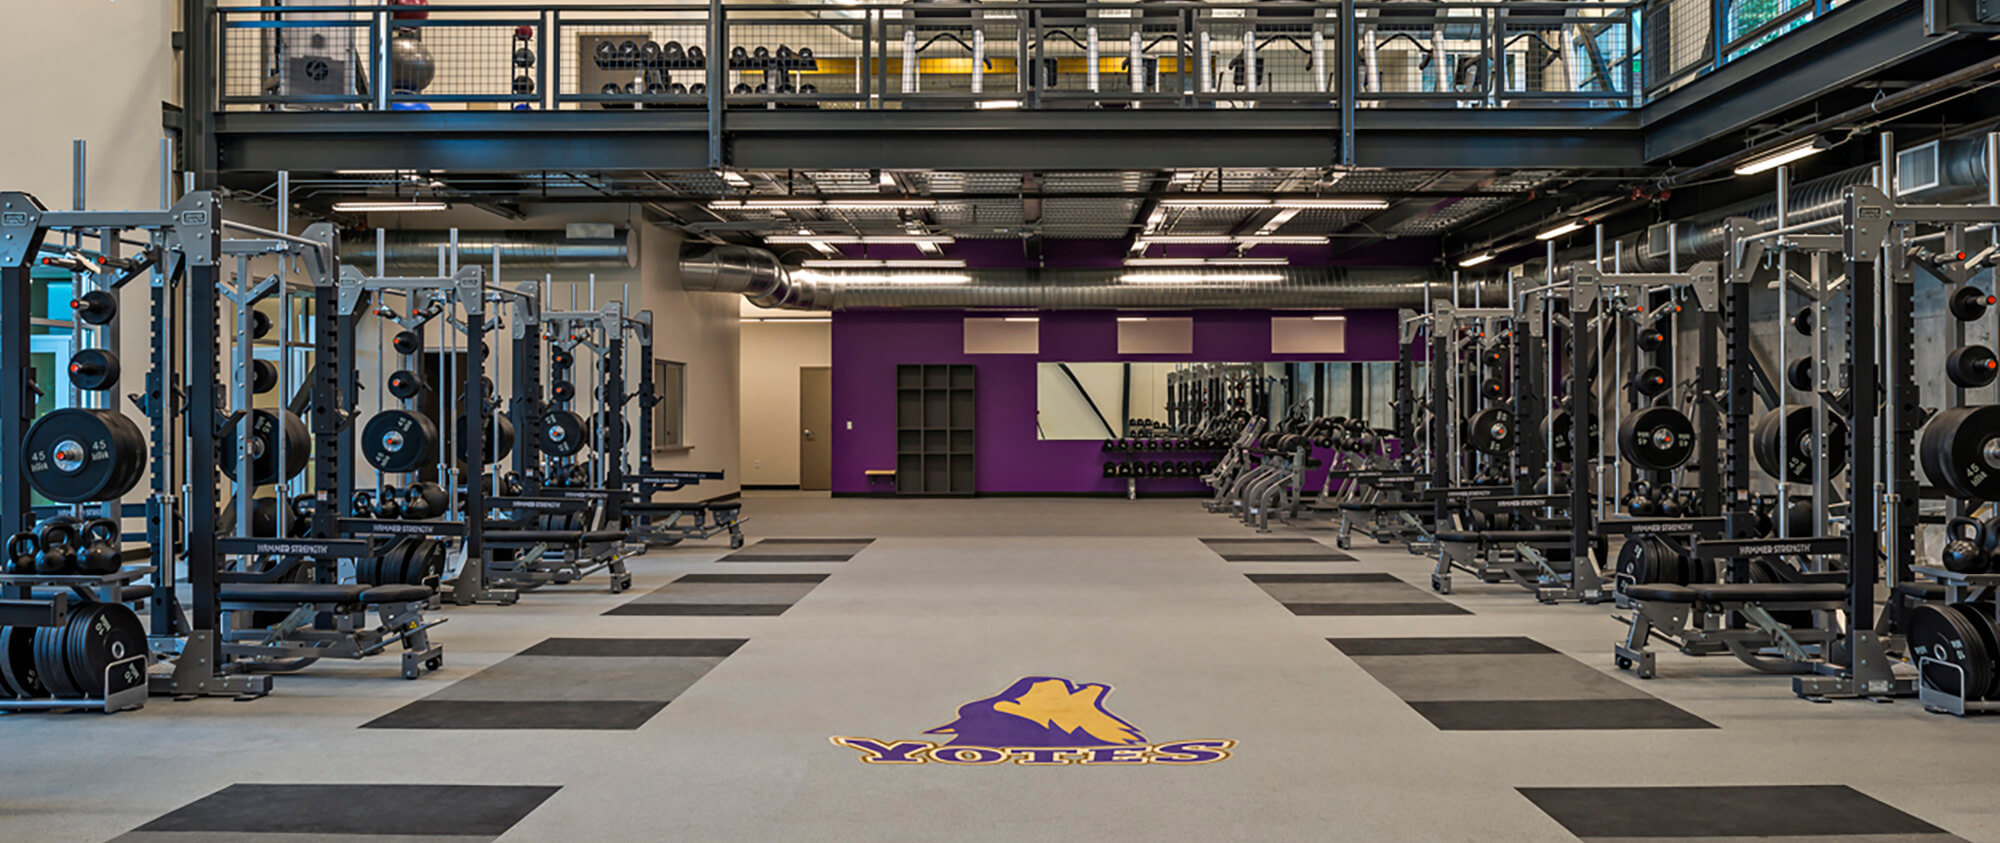 College Of Idaho >> College Of Idaho Marty Holly Athletics Outdoor Education